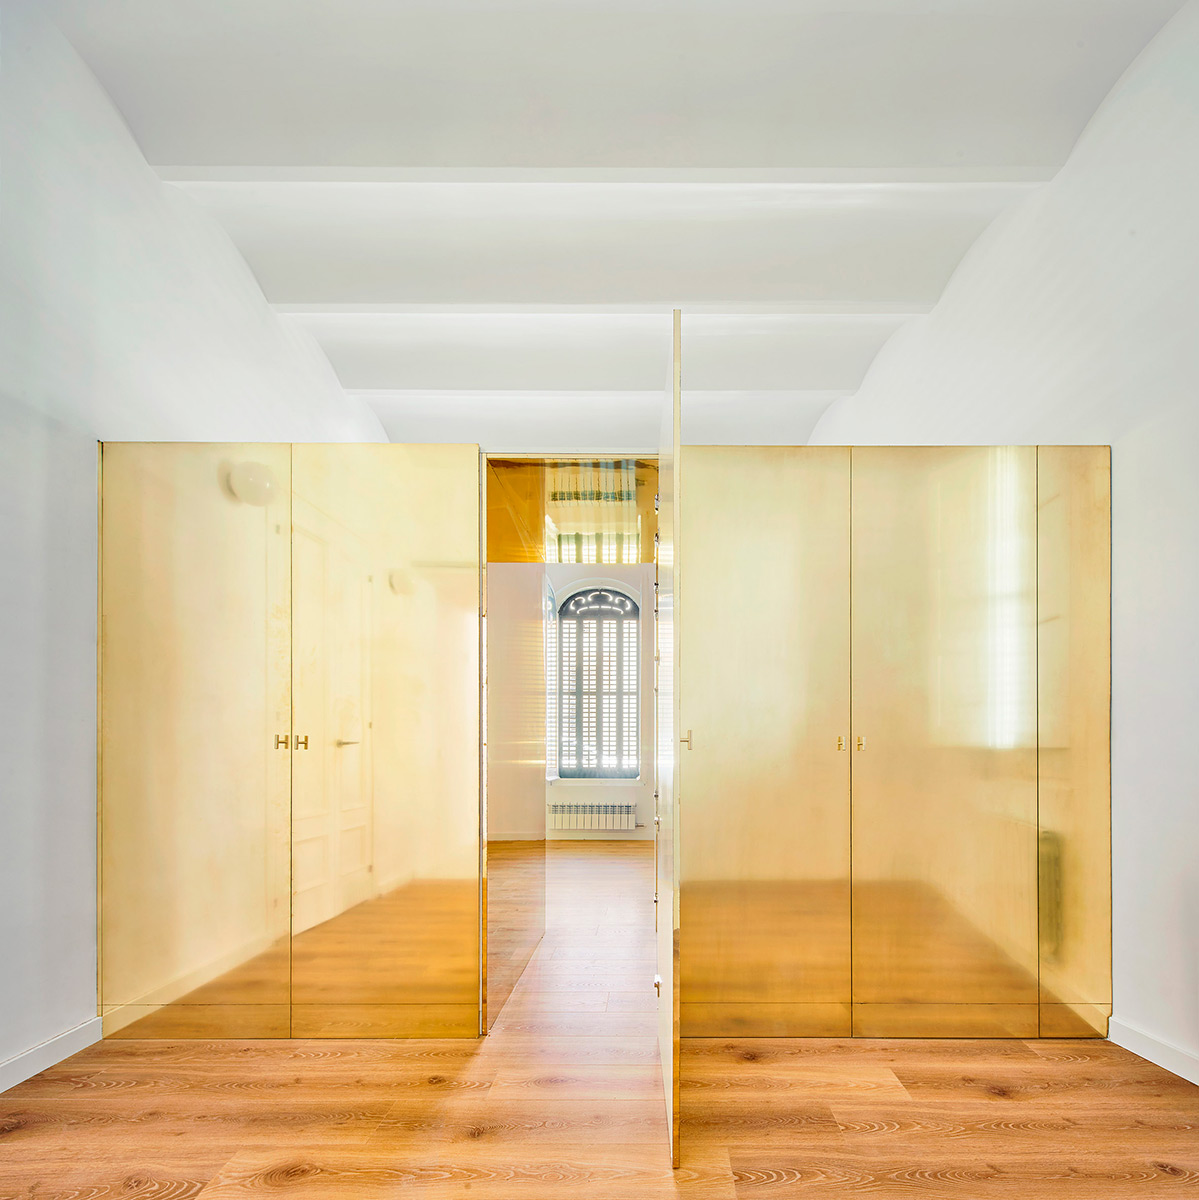 Magic-Box-Apartment-Raul-Sanchez-Architects-Jose-Hevia-02